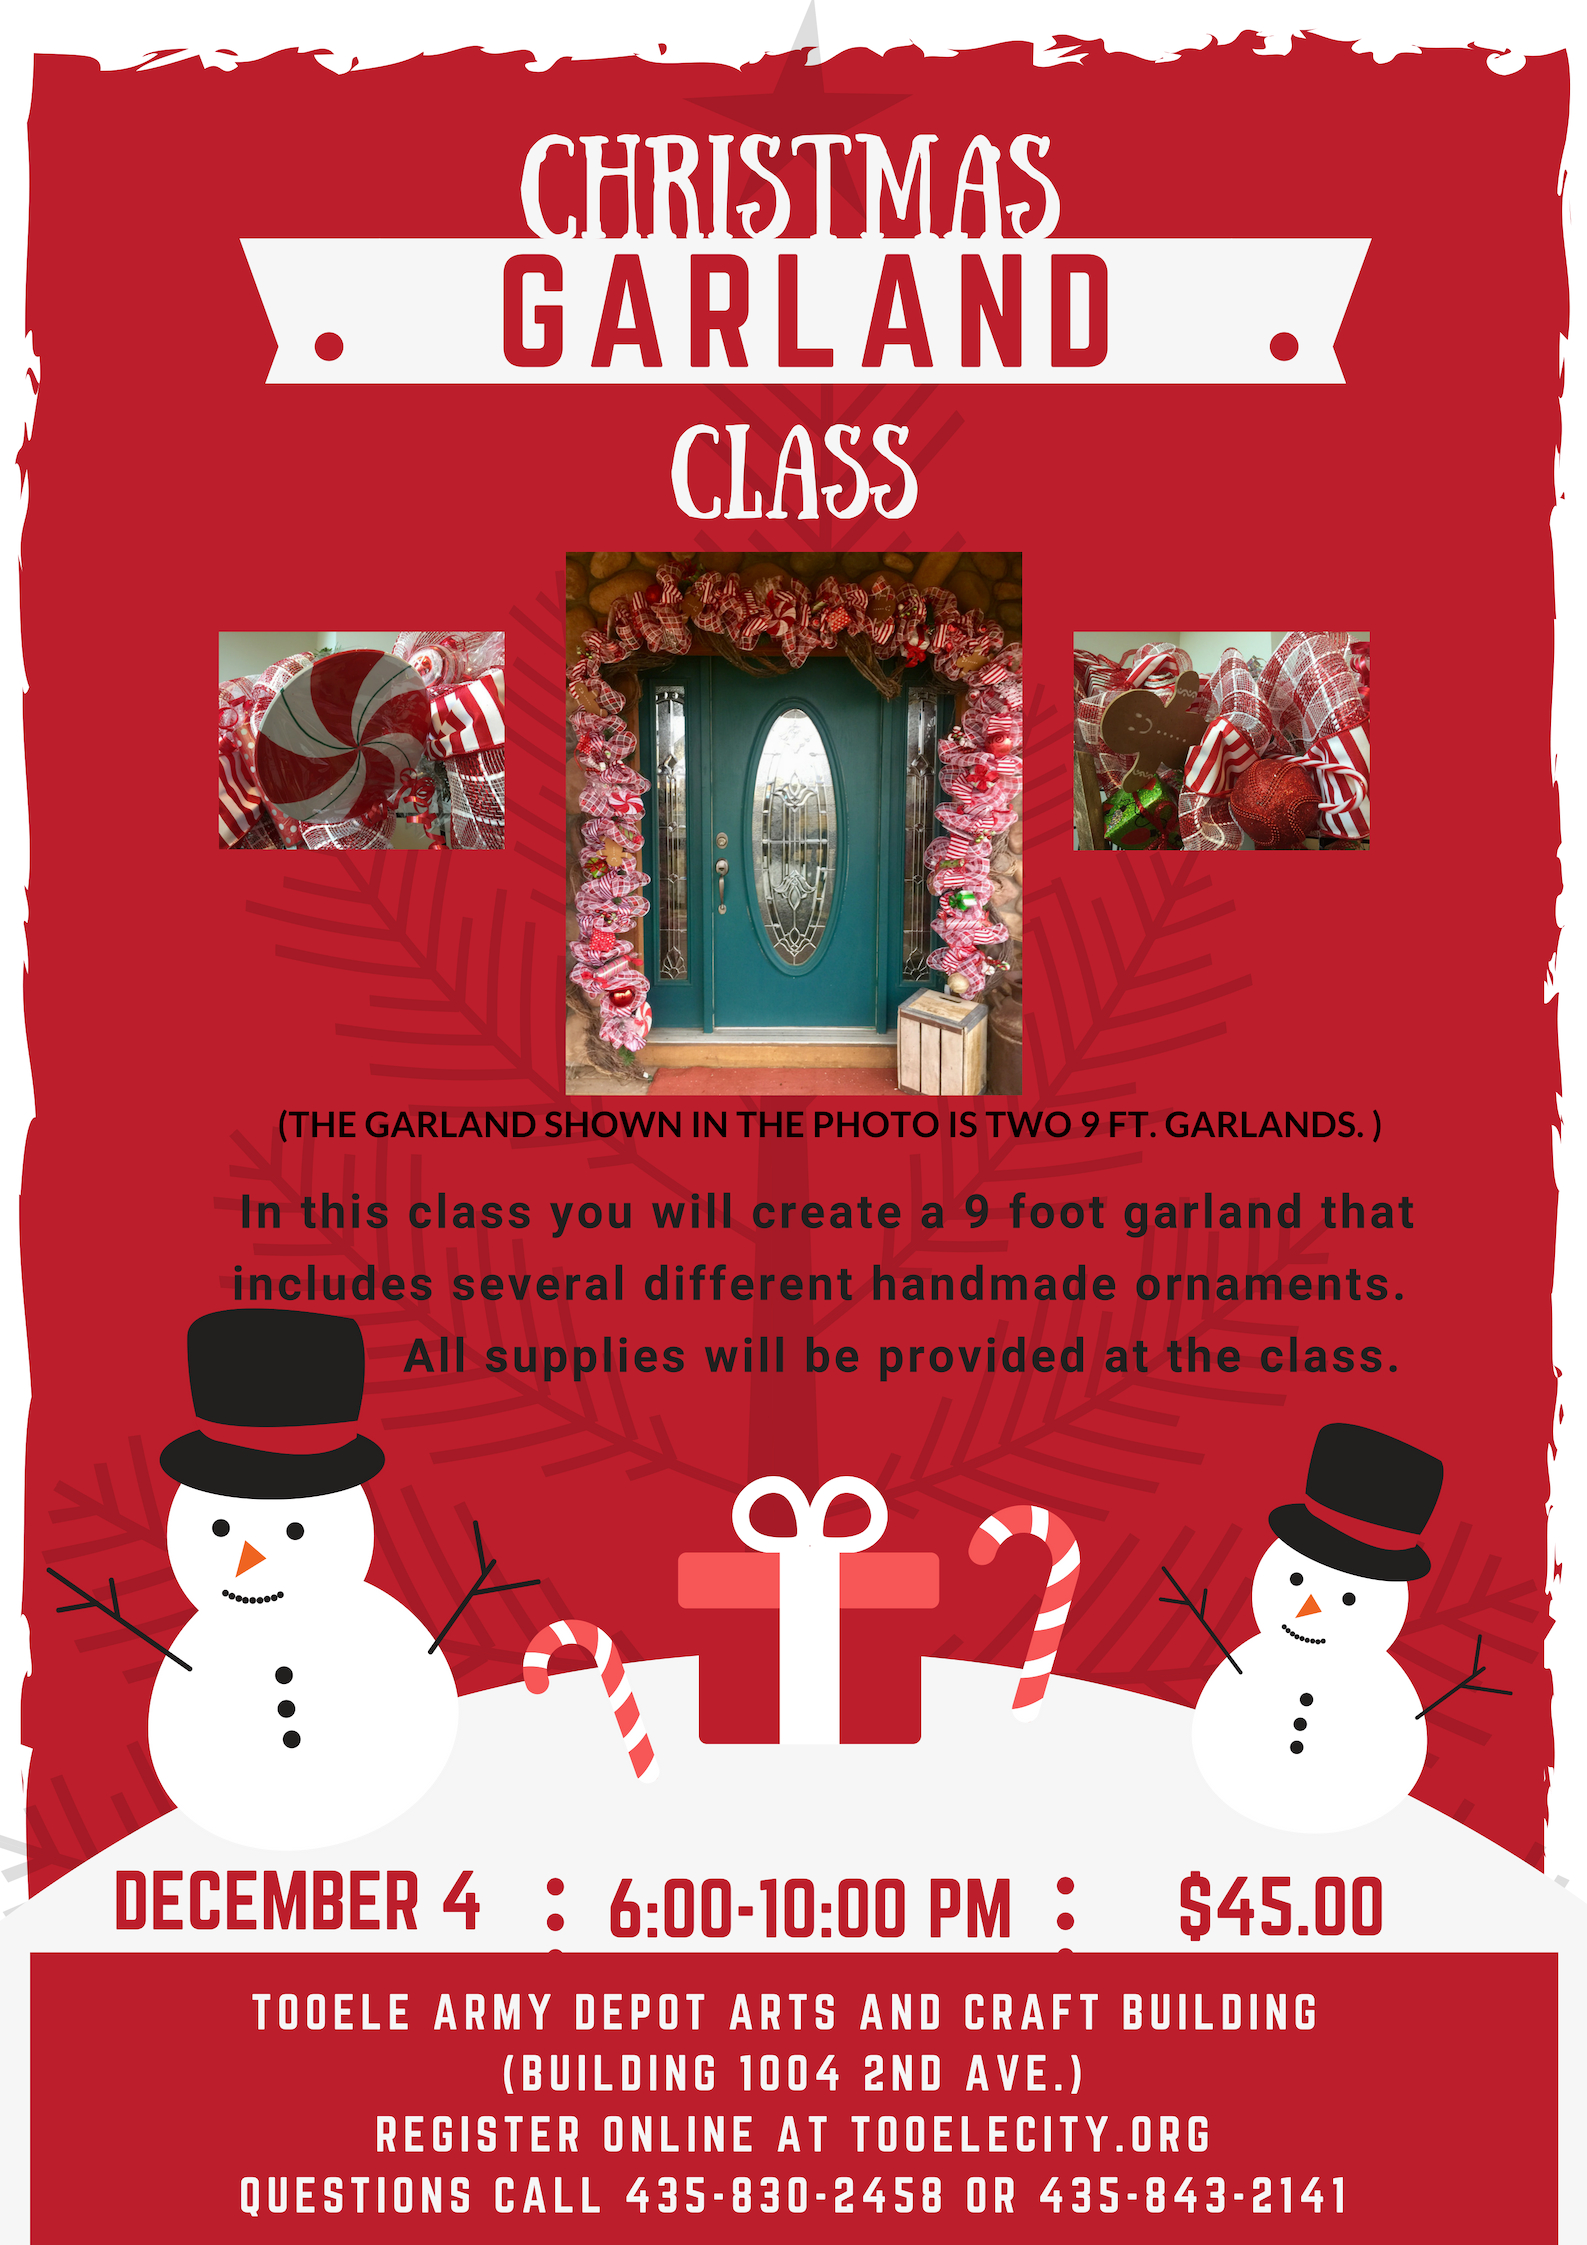 Christmas Garland Class @ Tooele Army Depot Arts & Craft Center (Building 1004 2nd Avenue) | Tooele | Utah | United States